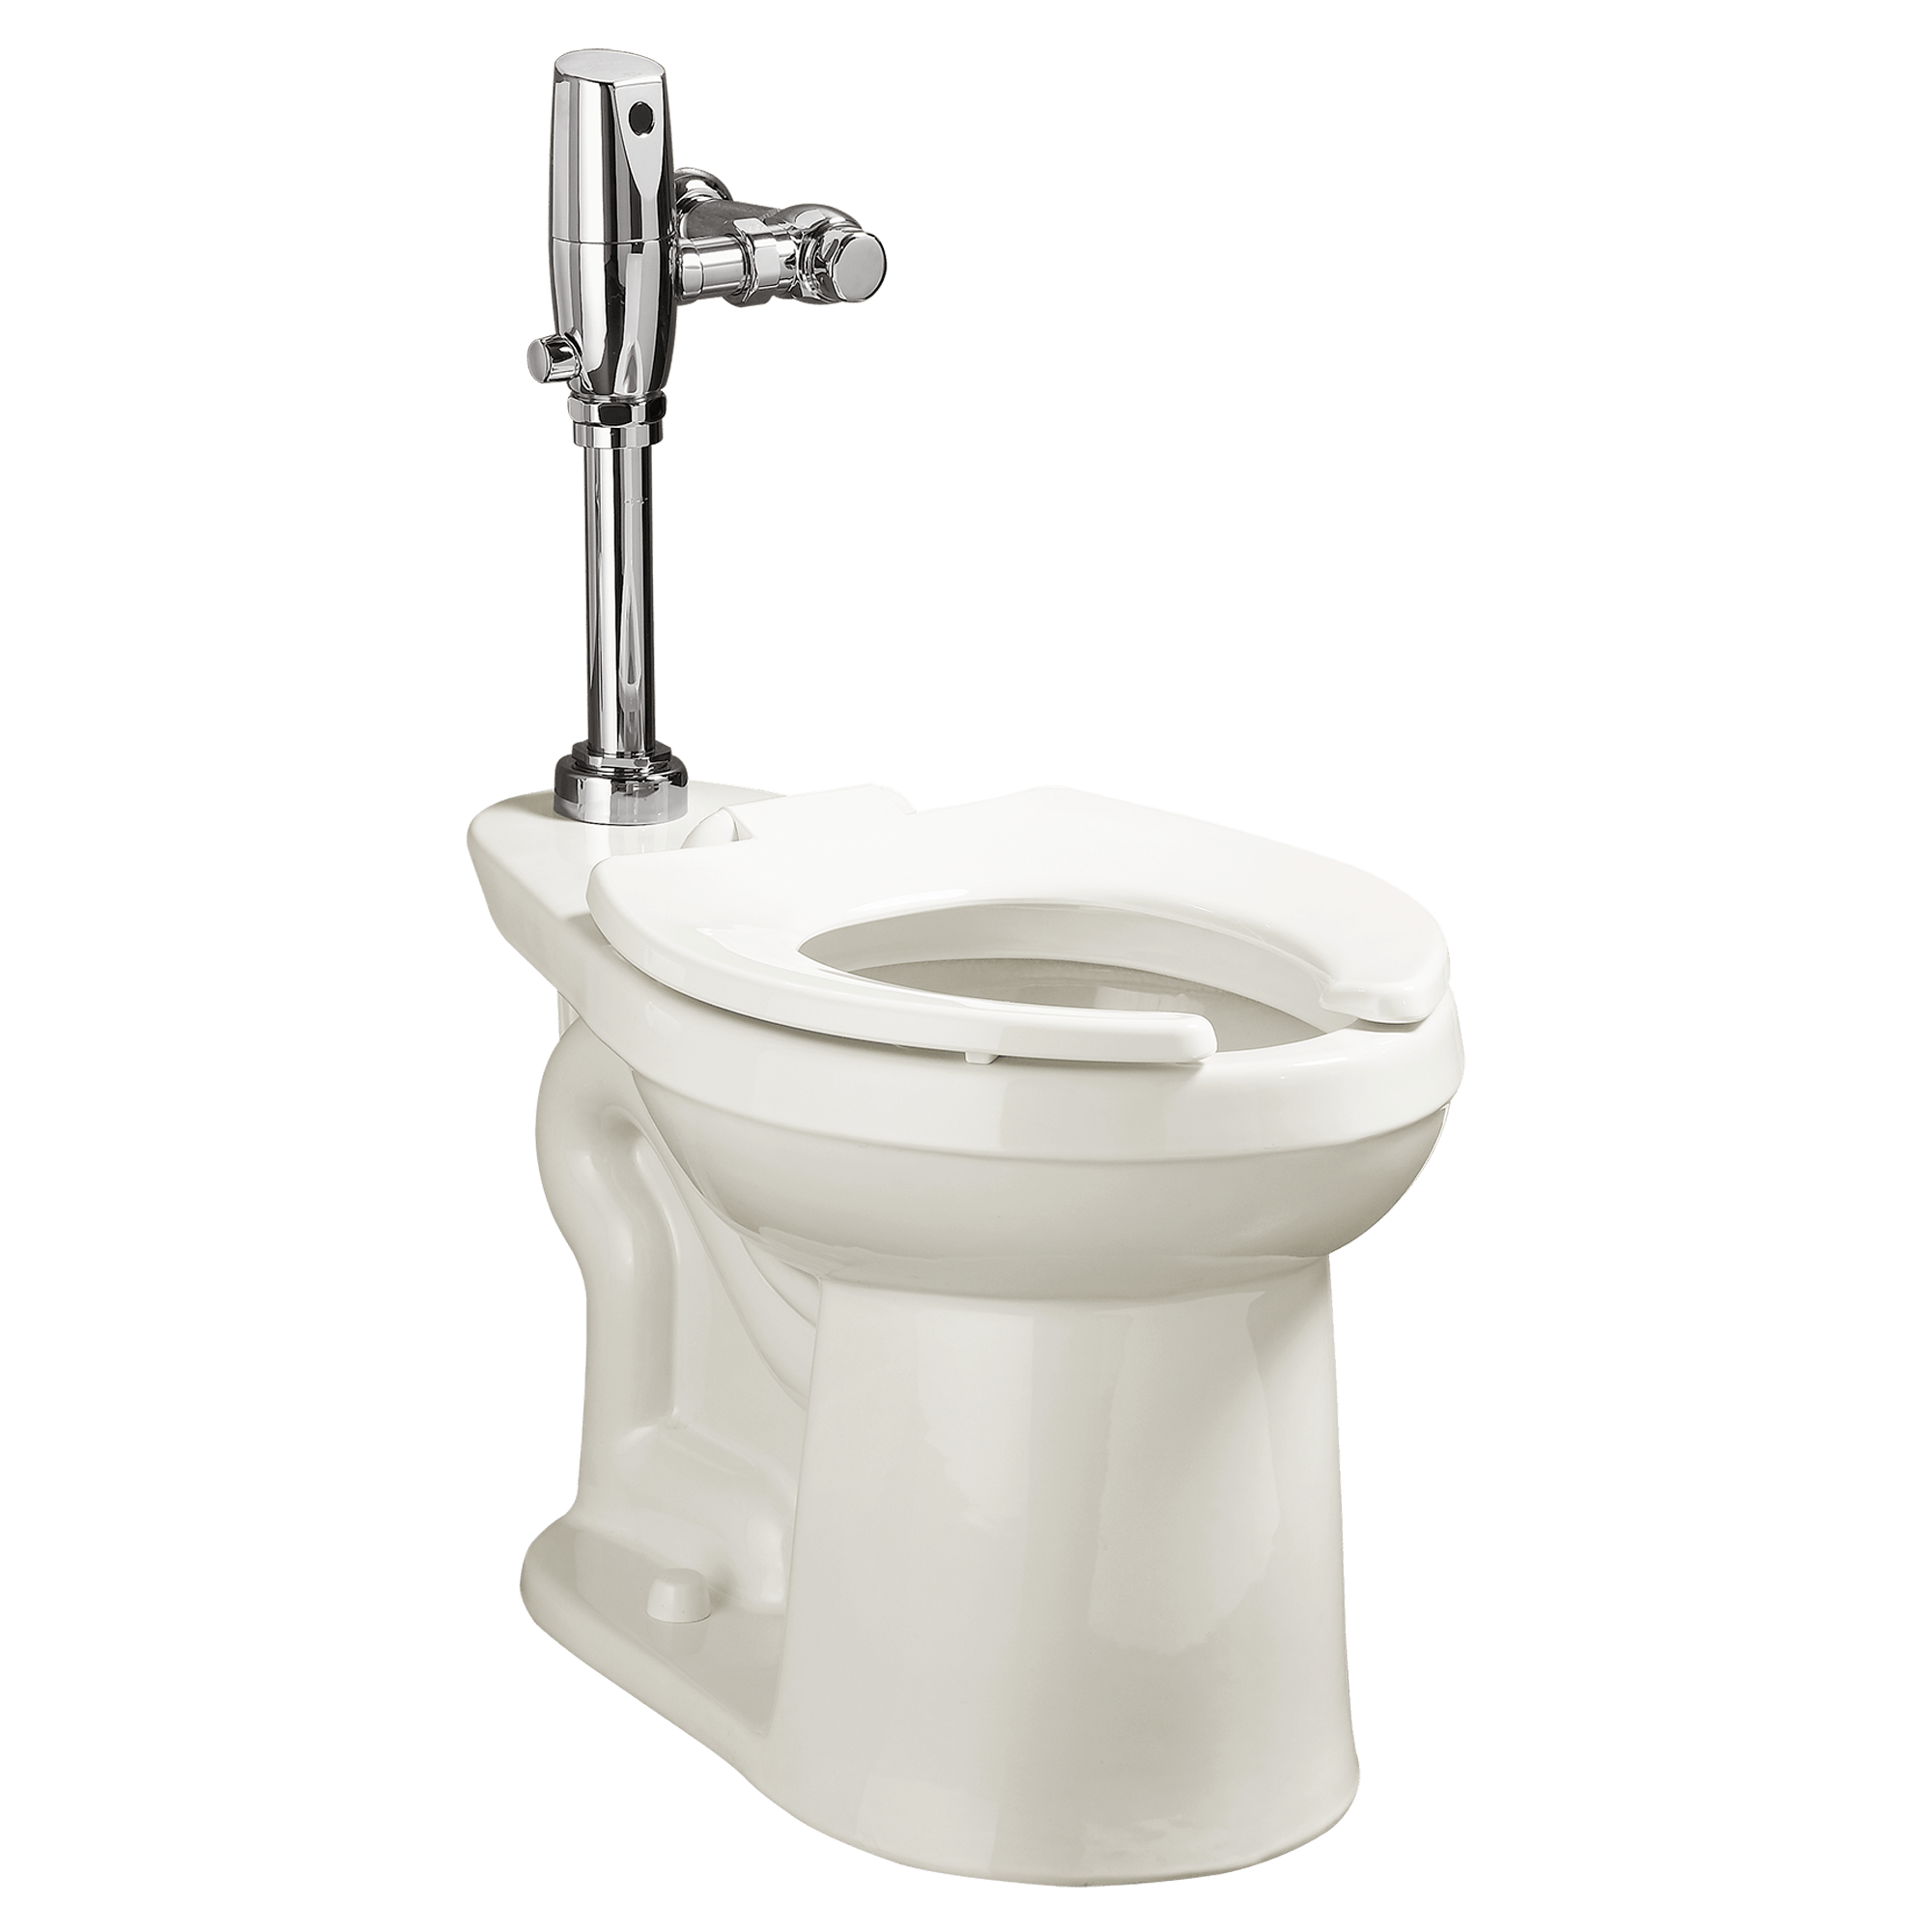 Toilet transparent png. American stickpng